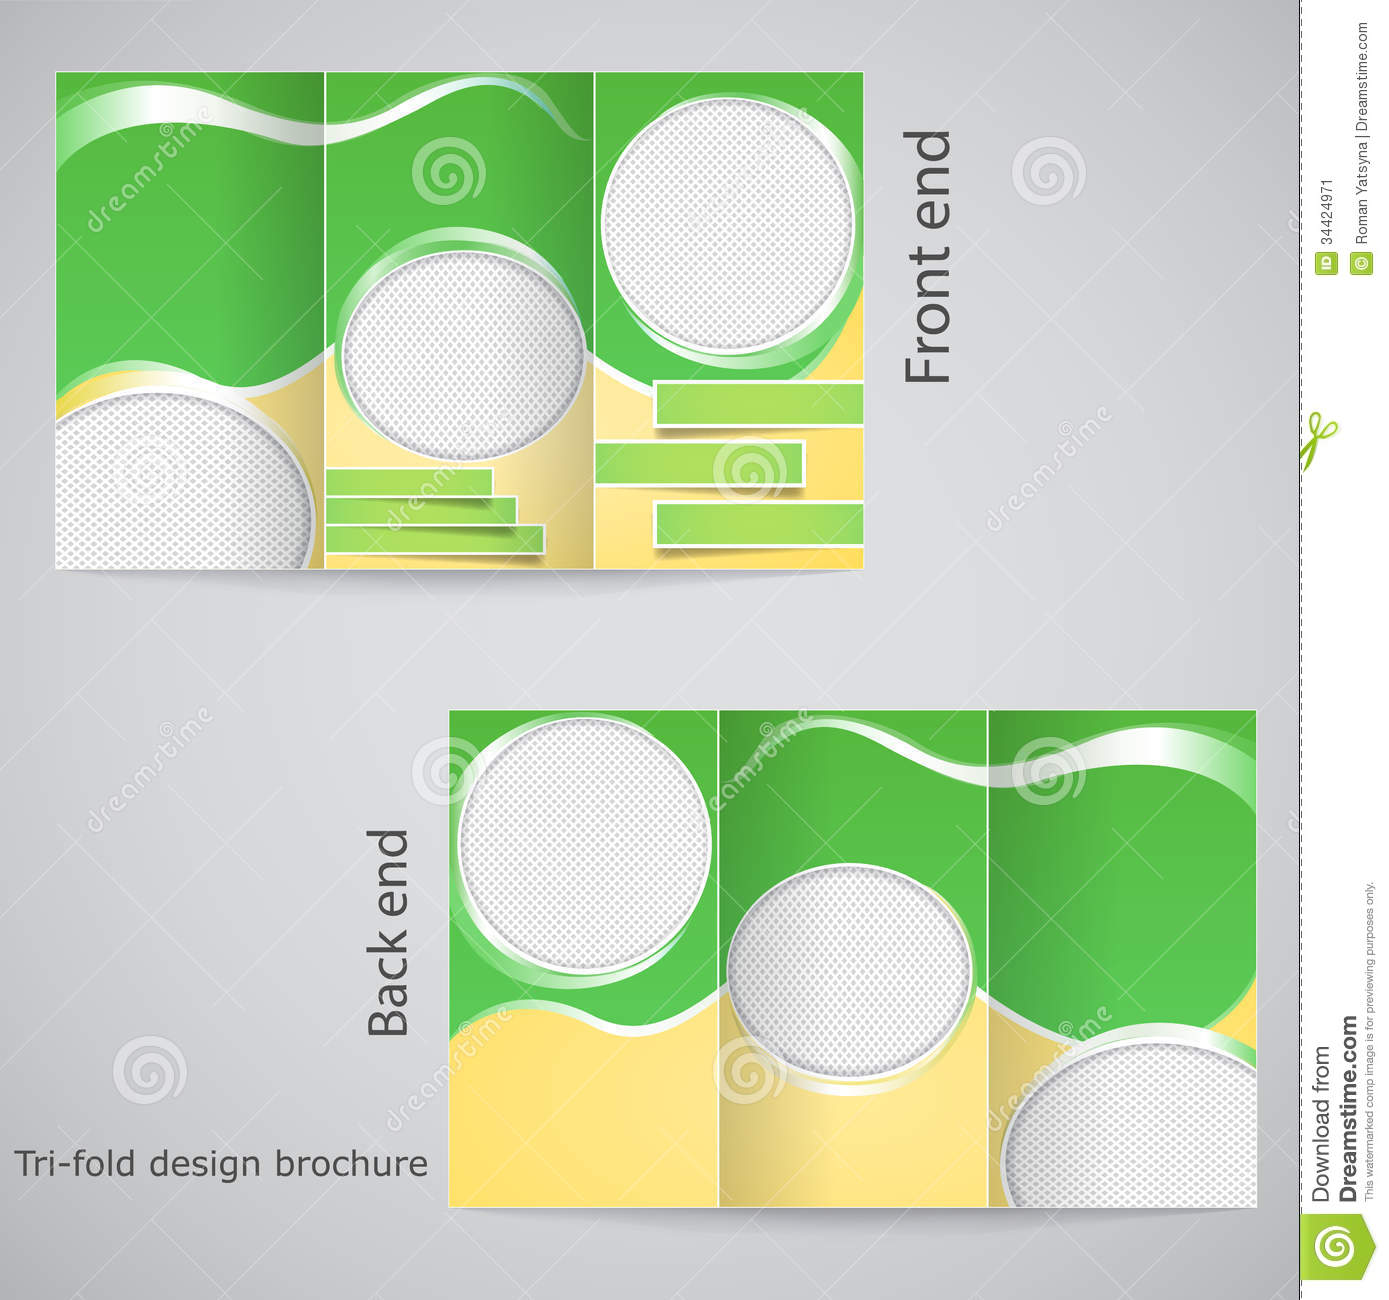 Tri fold brochure design stock vector illustration of for Brochure samples templates